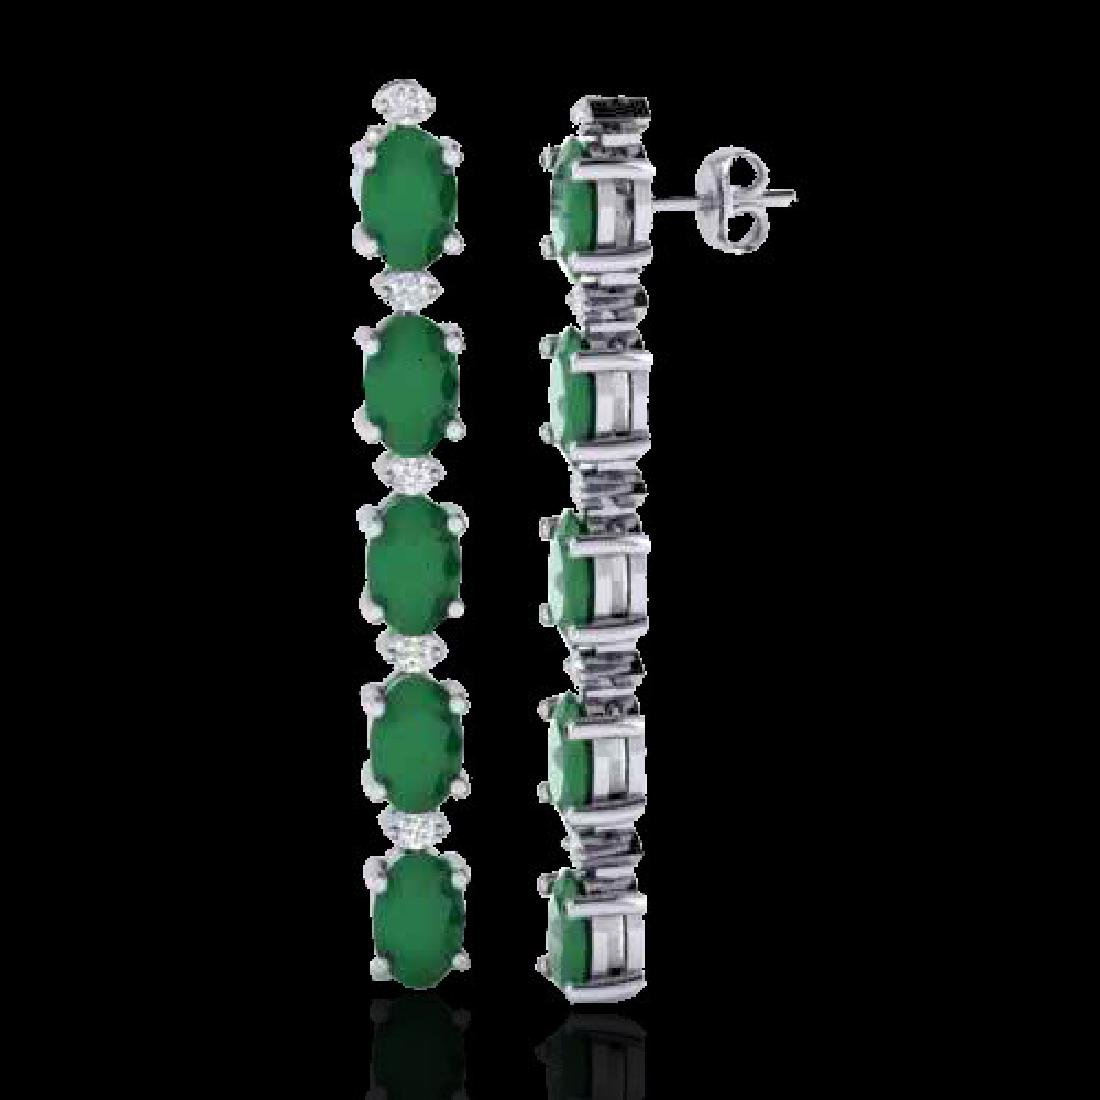 7 CTW Emerald & VS/SI Diamond Tennis Earrings 10K White - 2